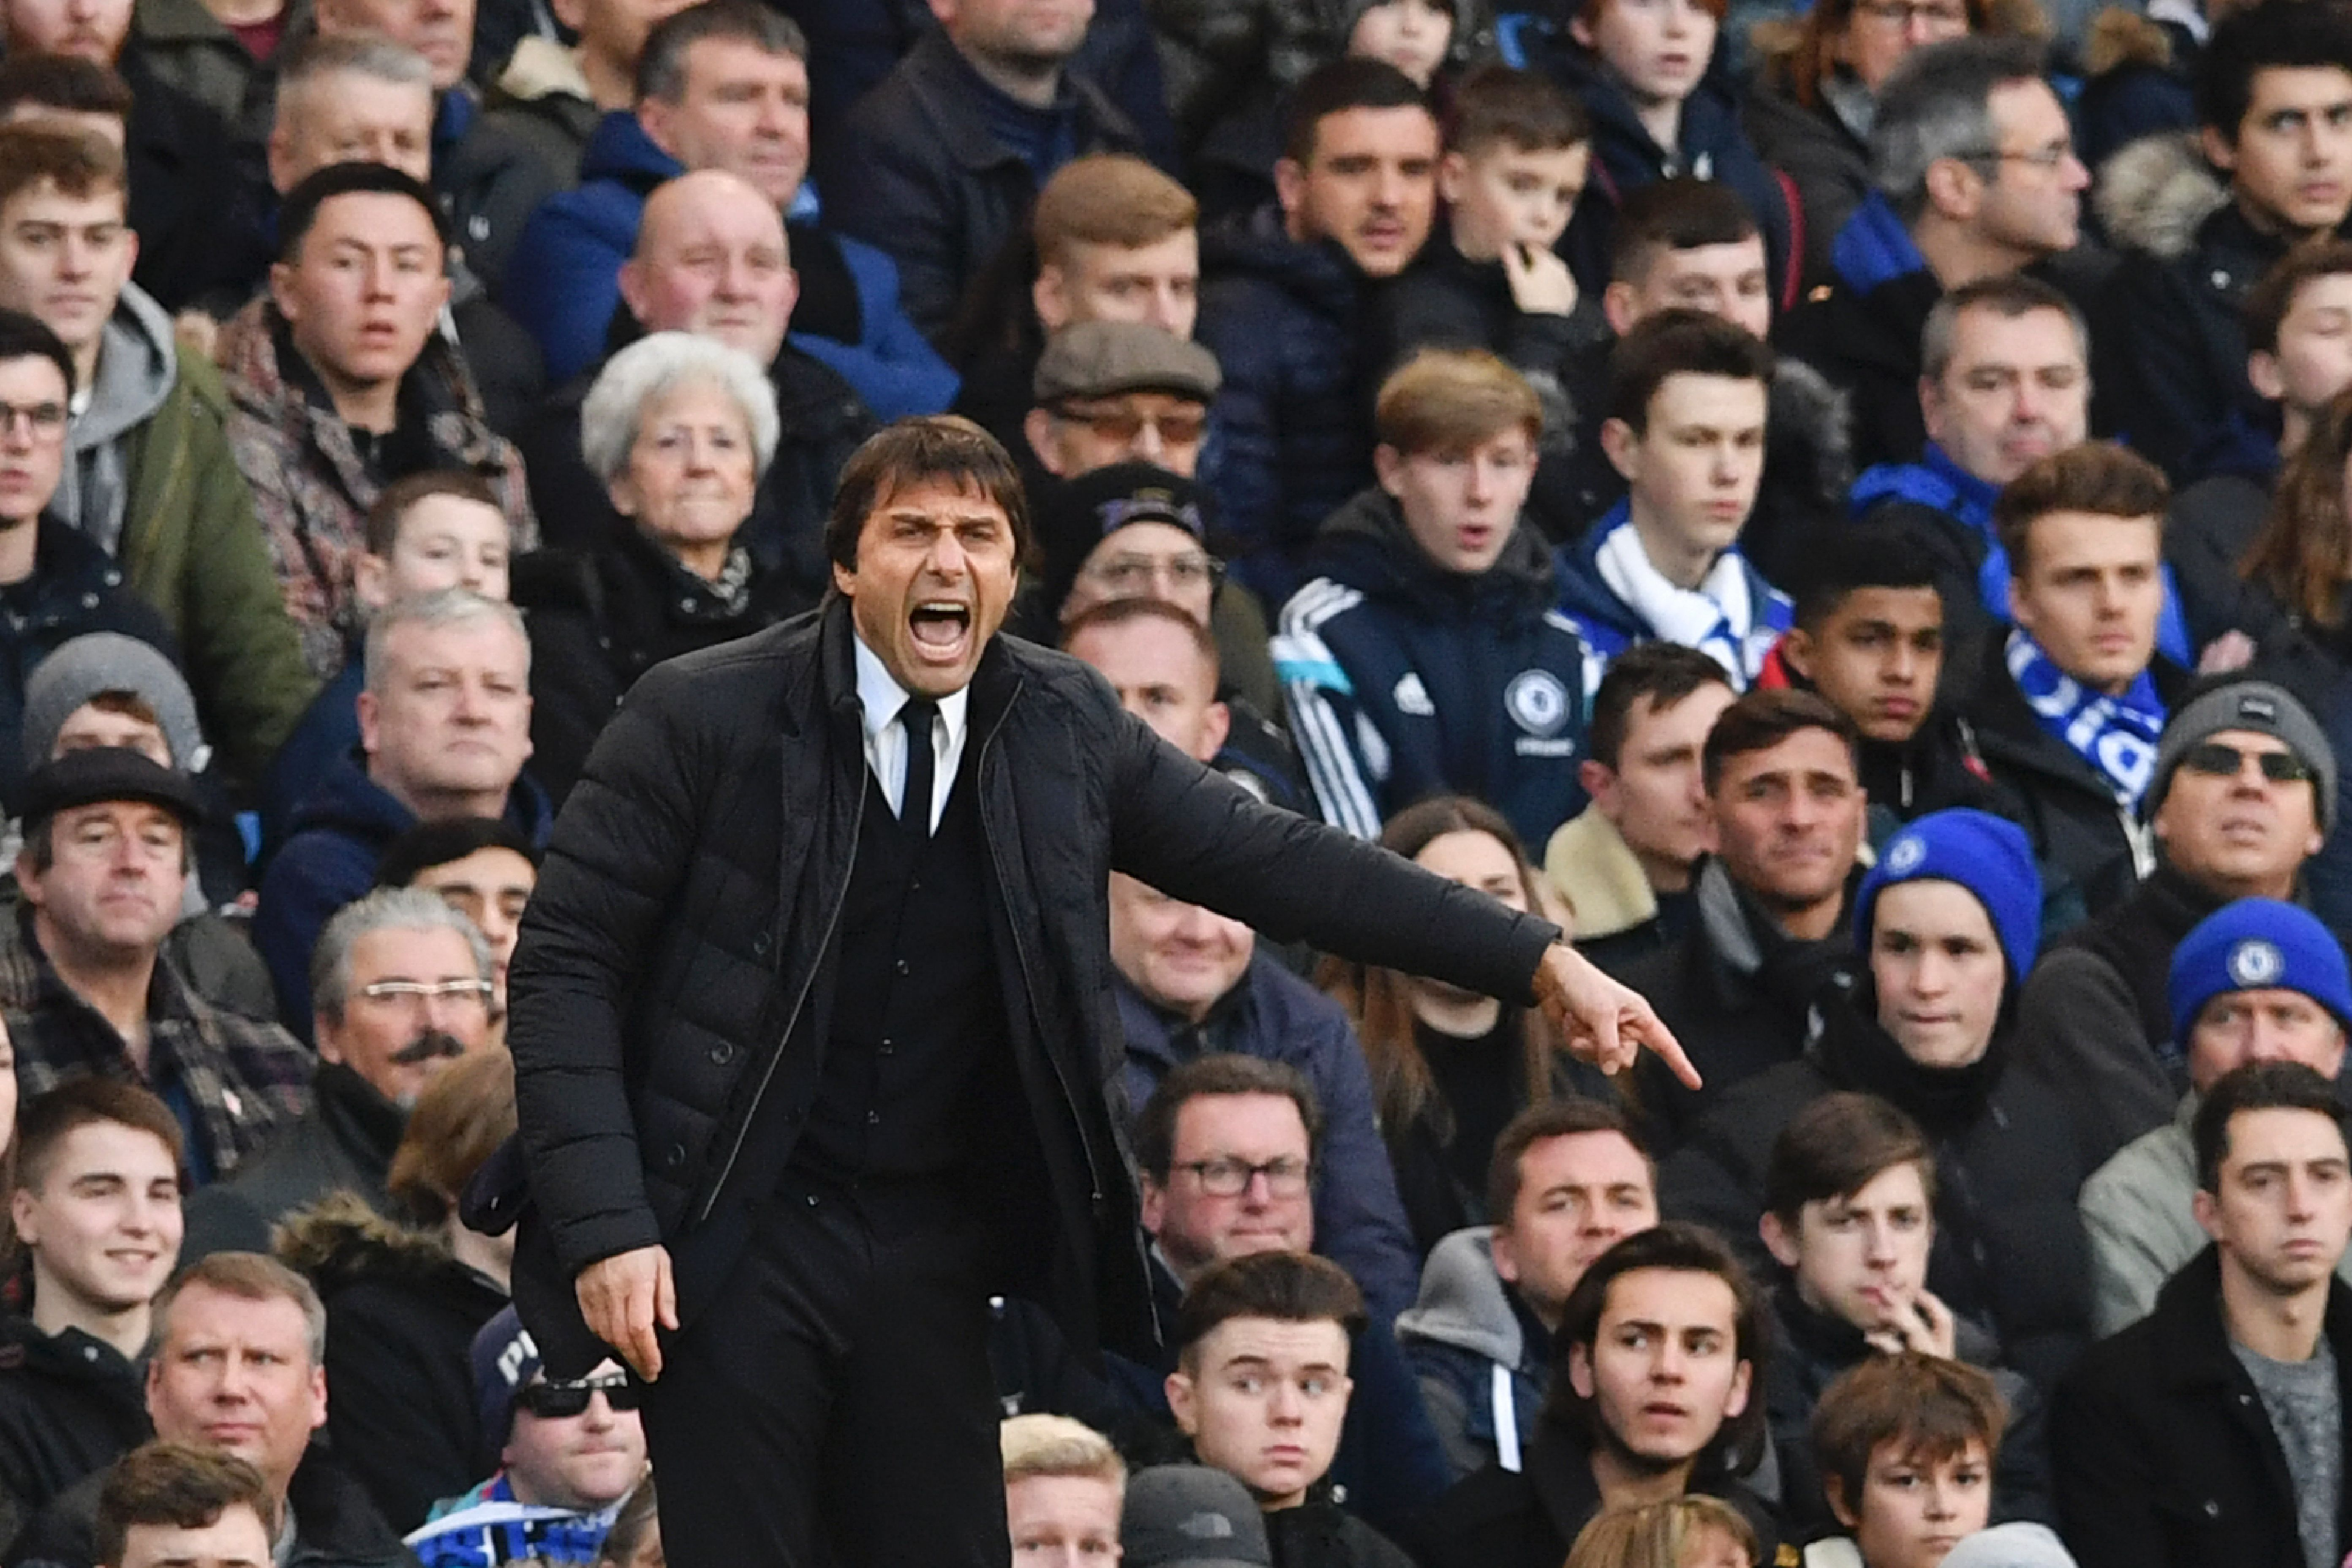 Chelsea's Italian head coach Antonio Conte gestures from the touchline during the English Premier League football match between Chelsea and Bournemouth at Stamford Bridge in London on December 26, 2016. / AFP / Ben STANSALL / RESTRICTED TO EDITORIAL USE. No use with unauthorized audio, video, data, fixture lists, club/league logos or 'live' services. Online in-match use limited to 75 images, no video emulation. No use in betting, games or single club/league/player publications. / (Photo credit should read BEN STANSALL/AFP/Getty Images)